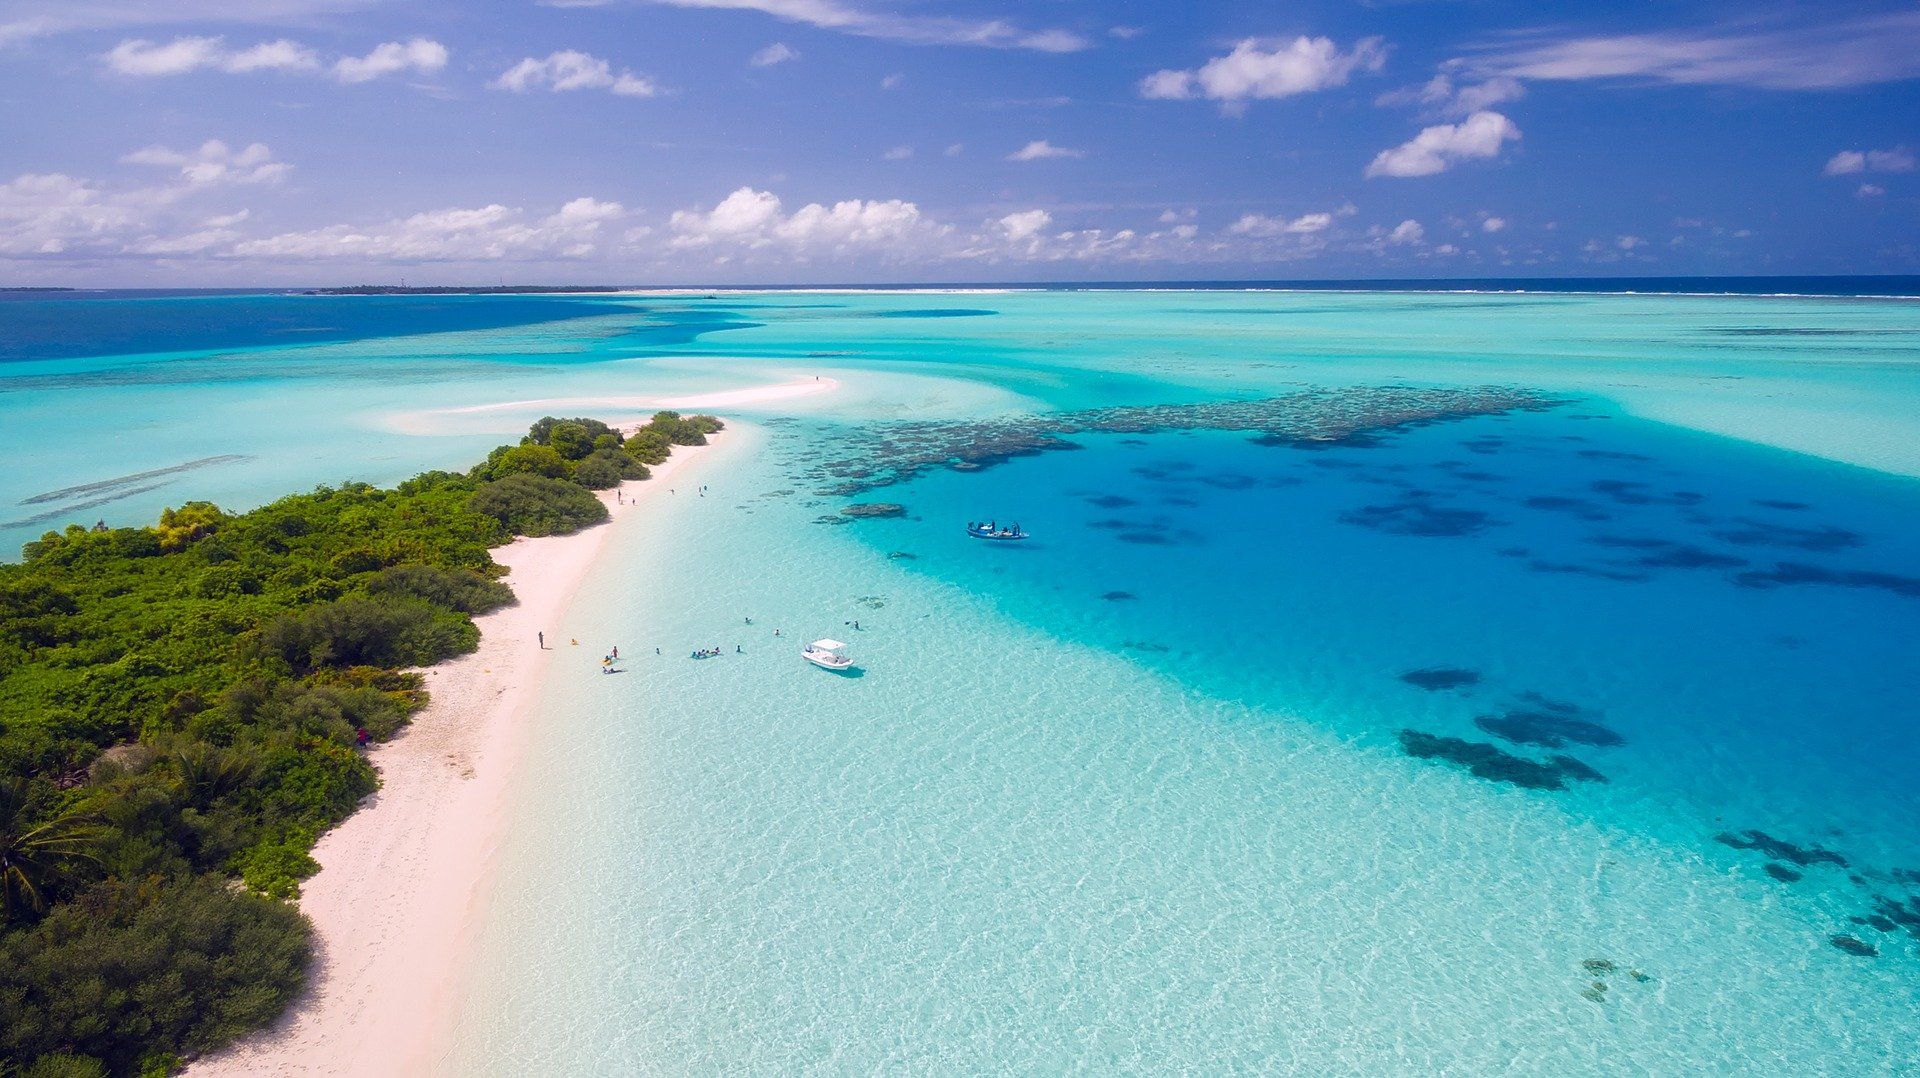 white sand beach and turquoise waters of the Maldives with coral reed and boats visible